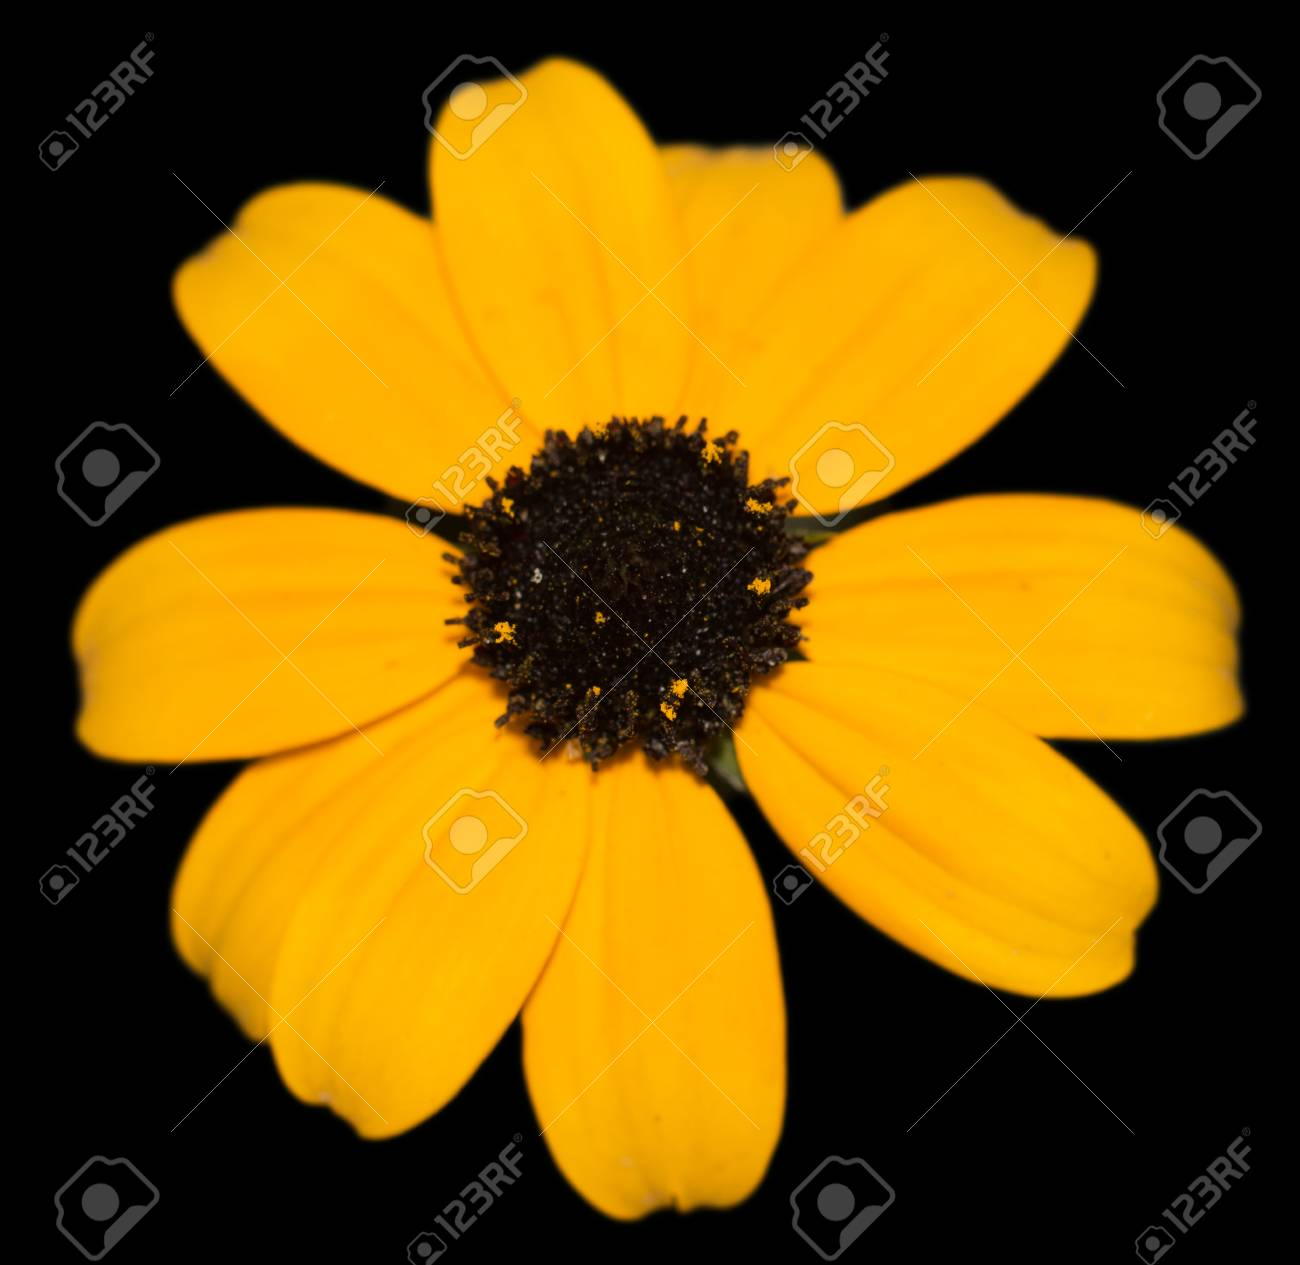 Yellow flower with black center close up stock photo picture and stock photo yellow flower with black center close up mightylinksfo